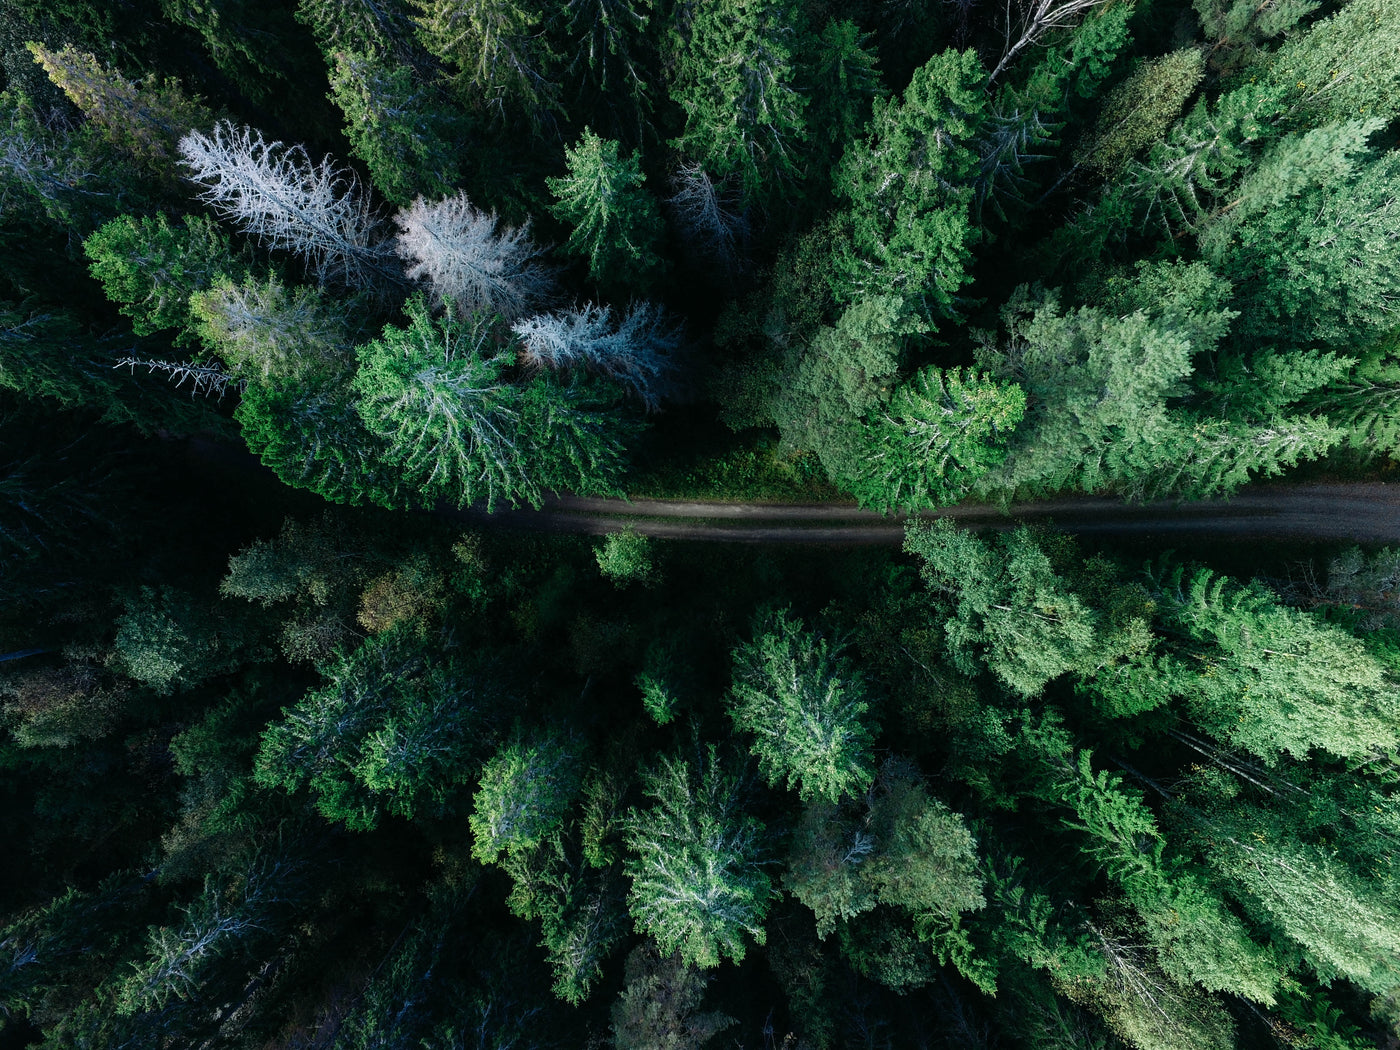 Aerial photography of forest with pine trees